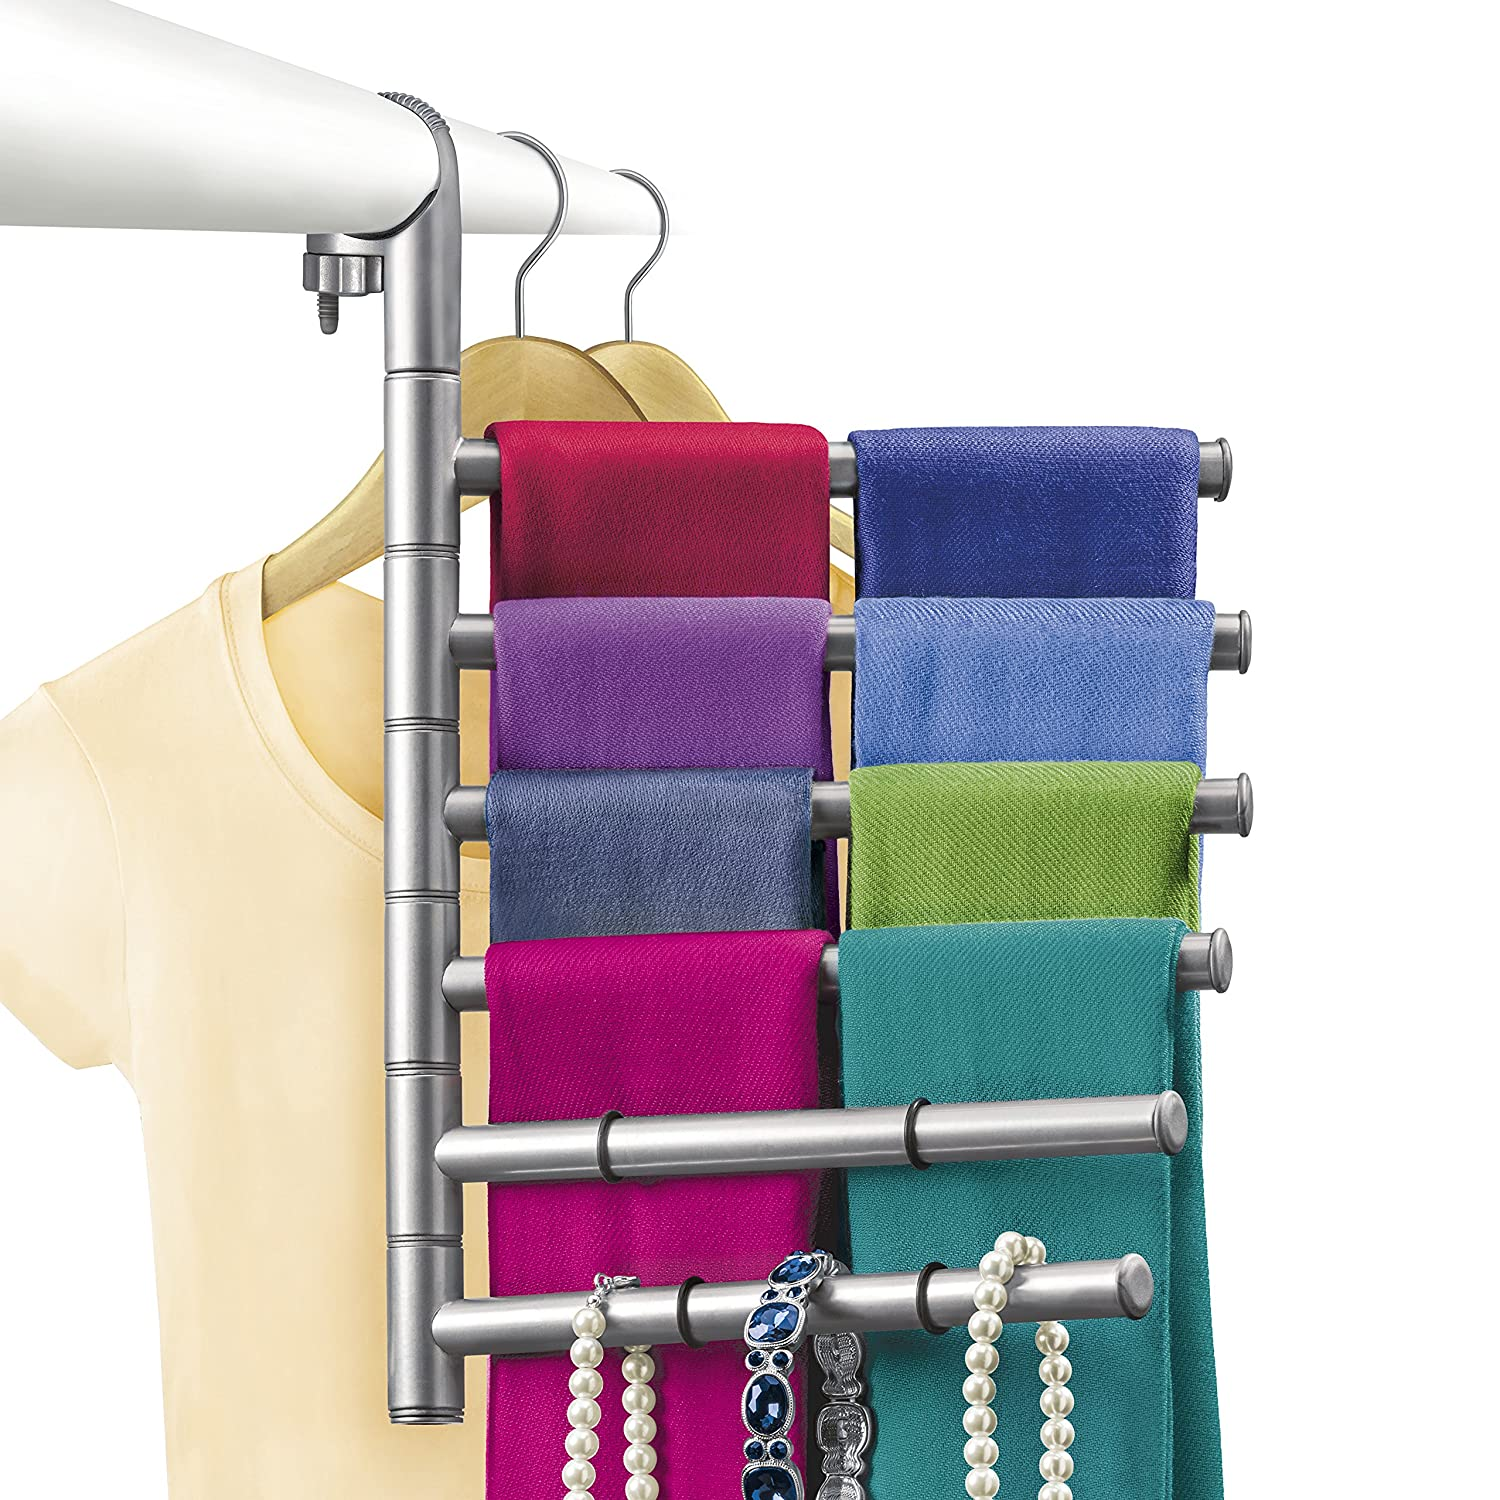 Amazon.com: Lynk Hanging Pivoting Scarf Rack and Accessory Holder - Closet Hanger  Organizer Rack - Platinum: Home & Kitchen